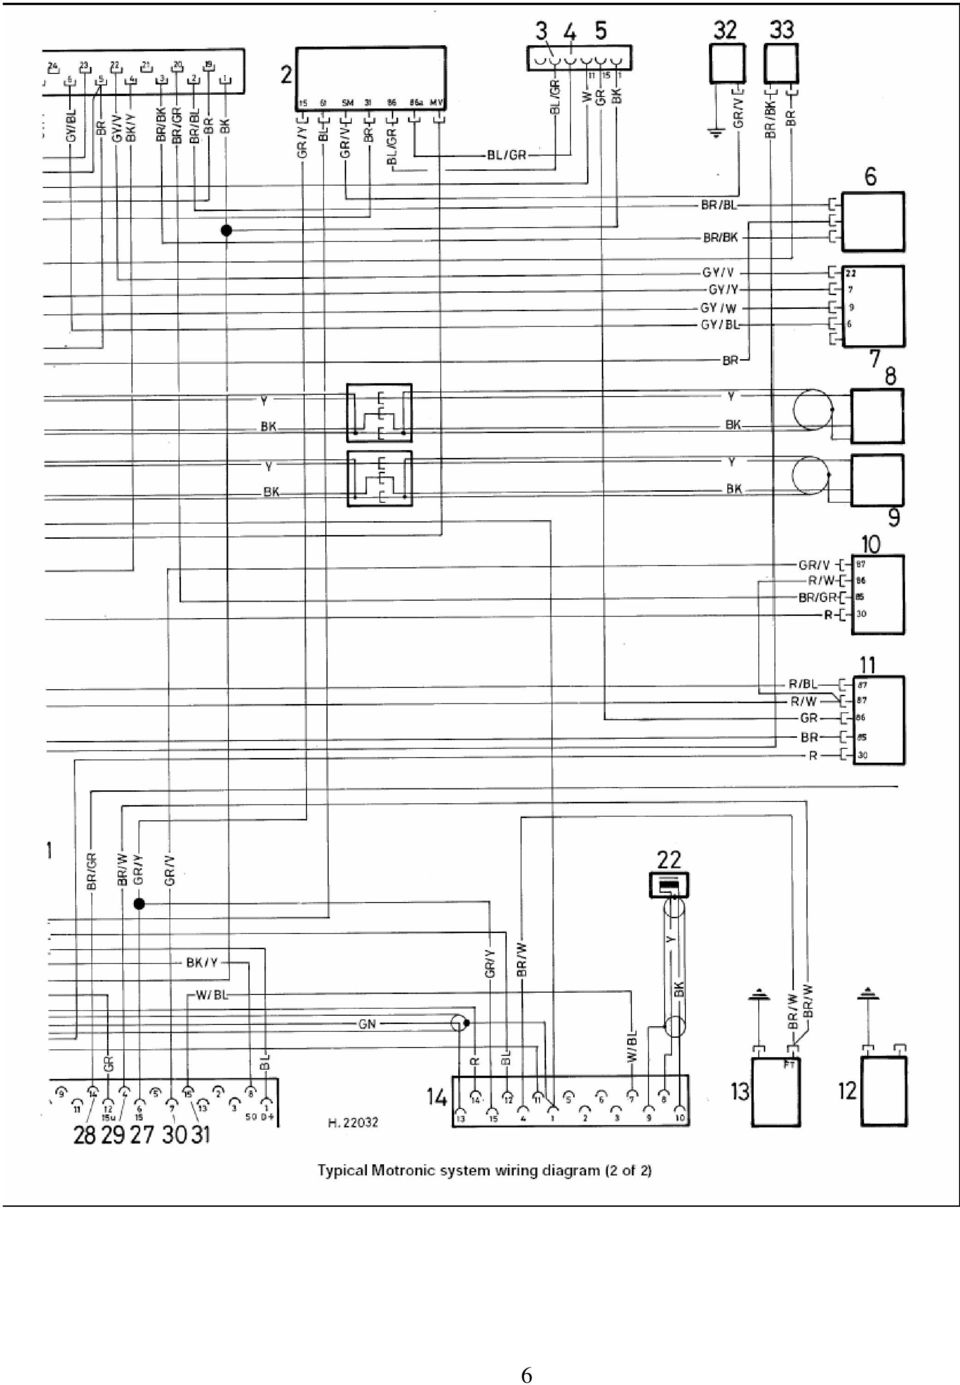 Colour Codes Diagrams Index Pdf 6 Speaker Wiring Diagram Cars Chat 7 Key To Motronic Engine Control System Picture 1 2 Electronic Unit Ecu 18 Distributor Speed Relay 19